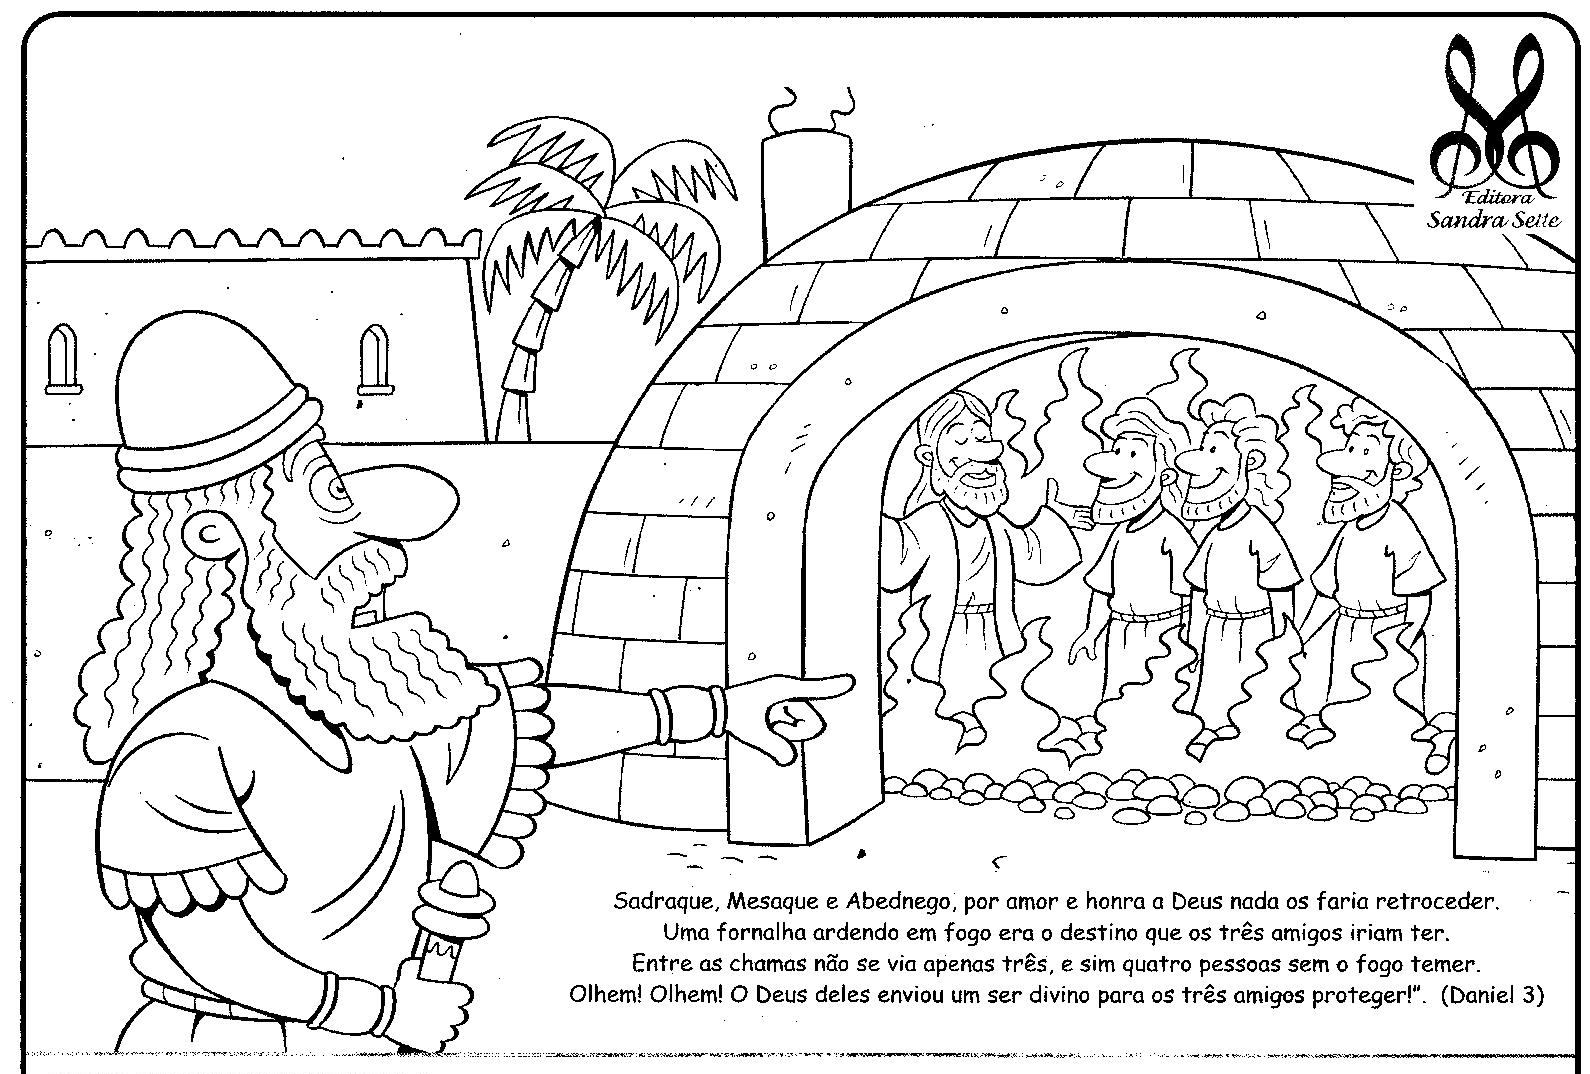 fiery furnace coloring page fiery furnace coloring pages day 3 journey off the map furnace page coloring fiery